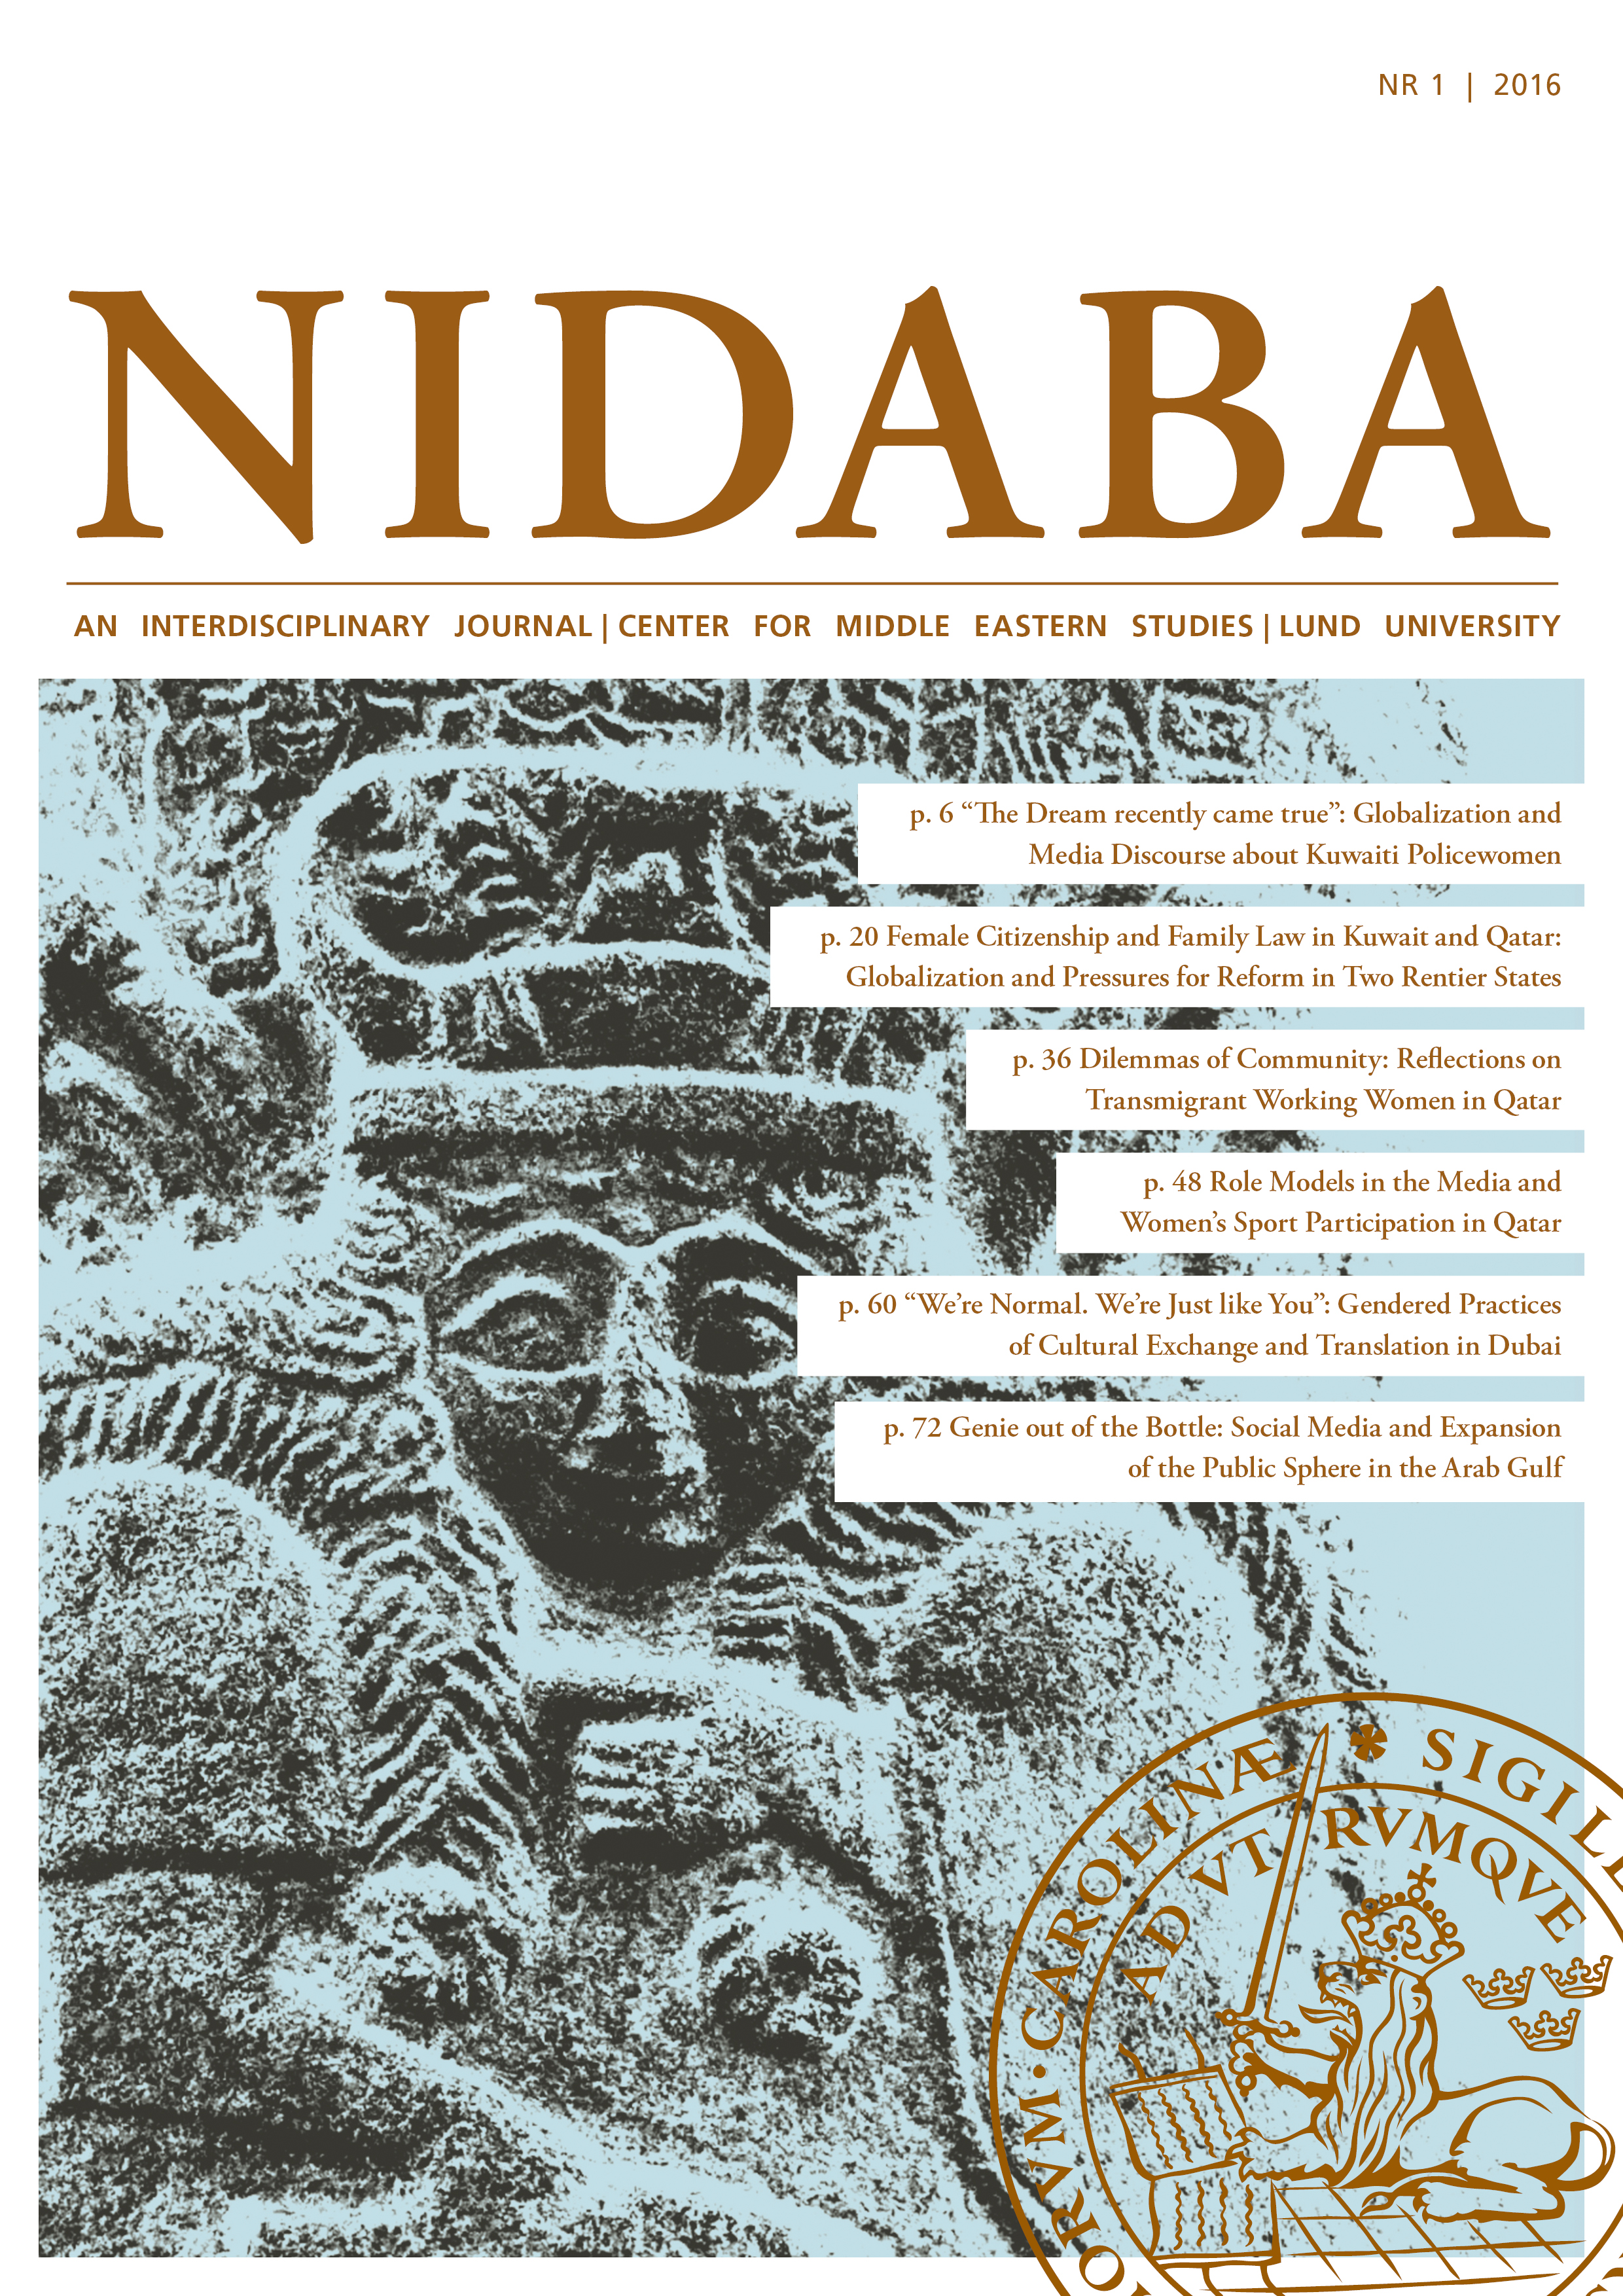 Nidaba Issue 1, Vol 1, 2016 Cover